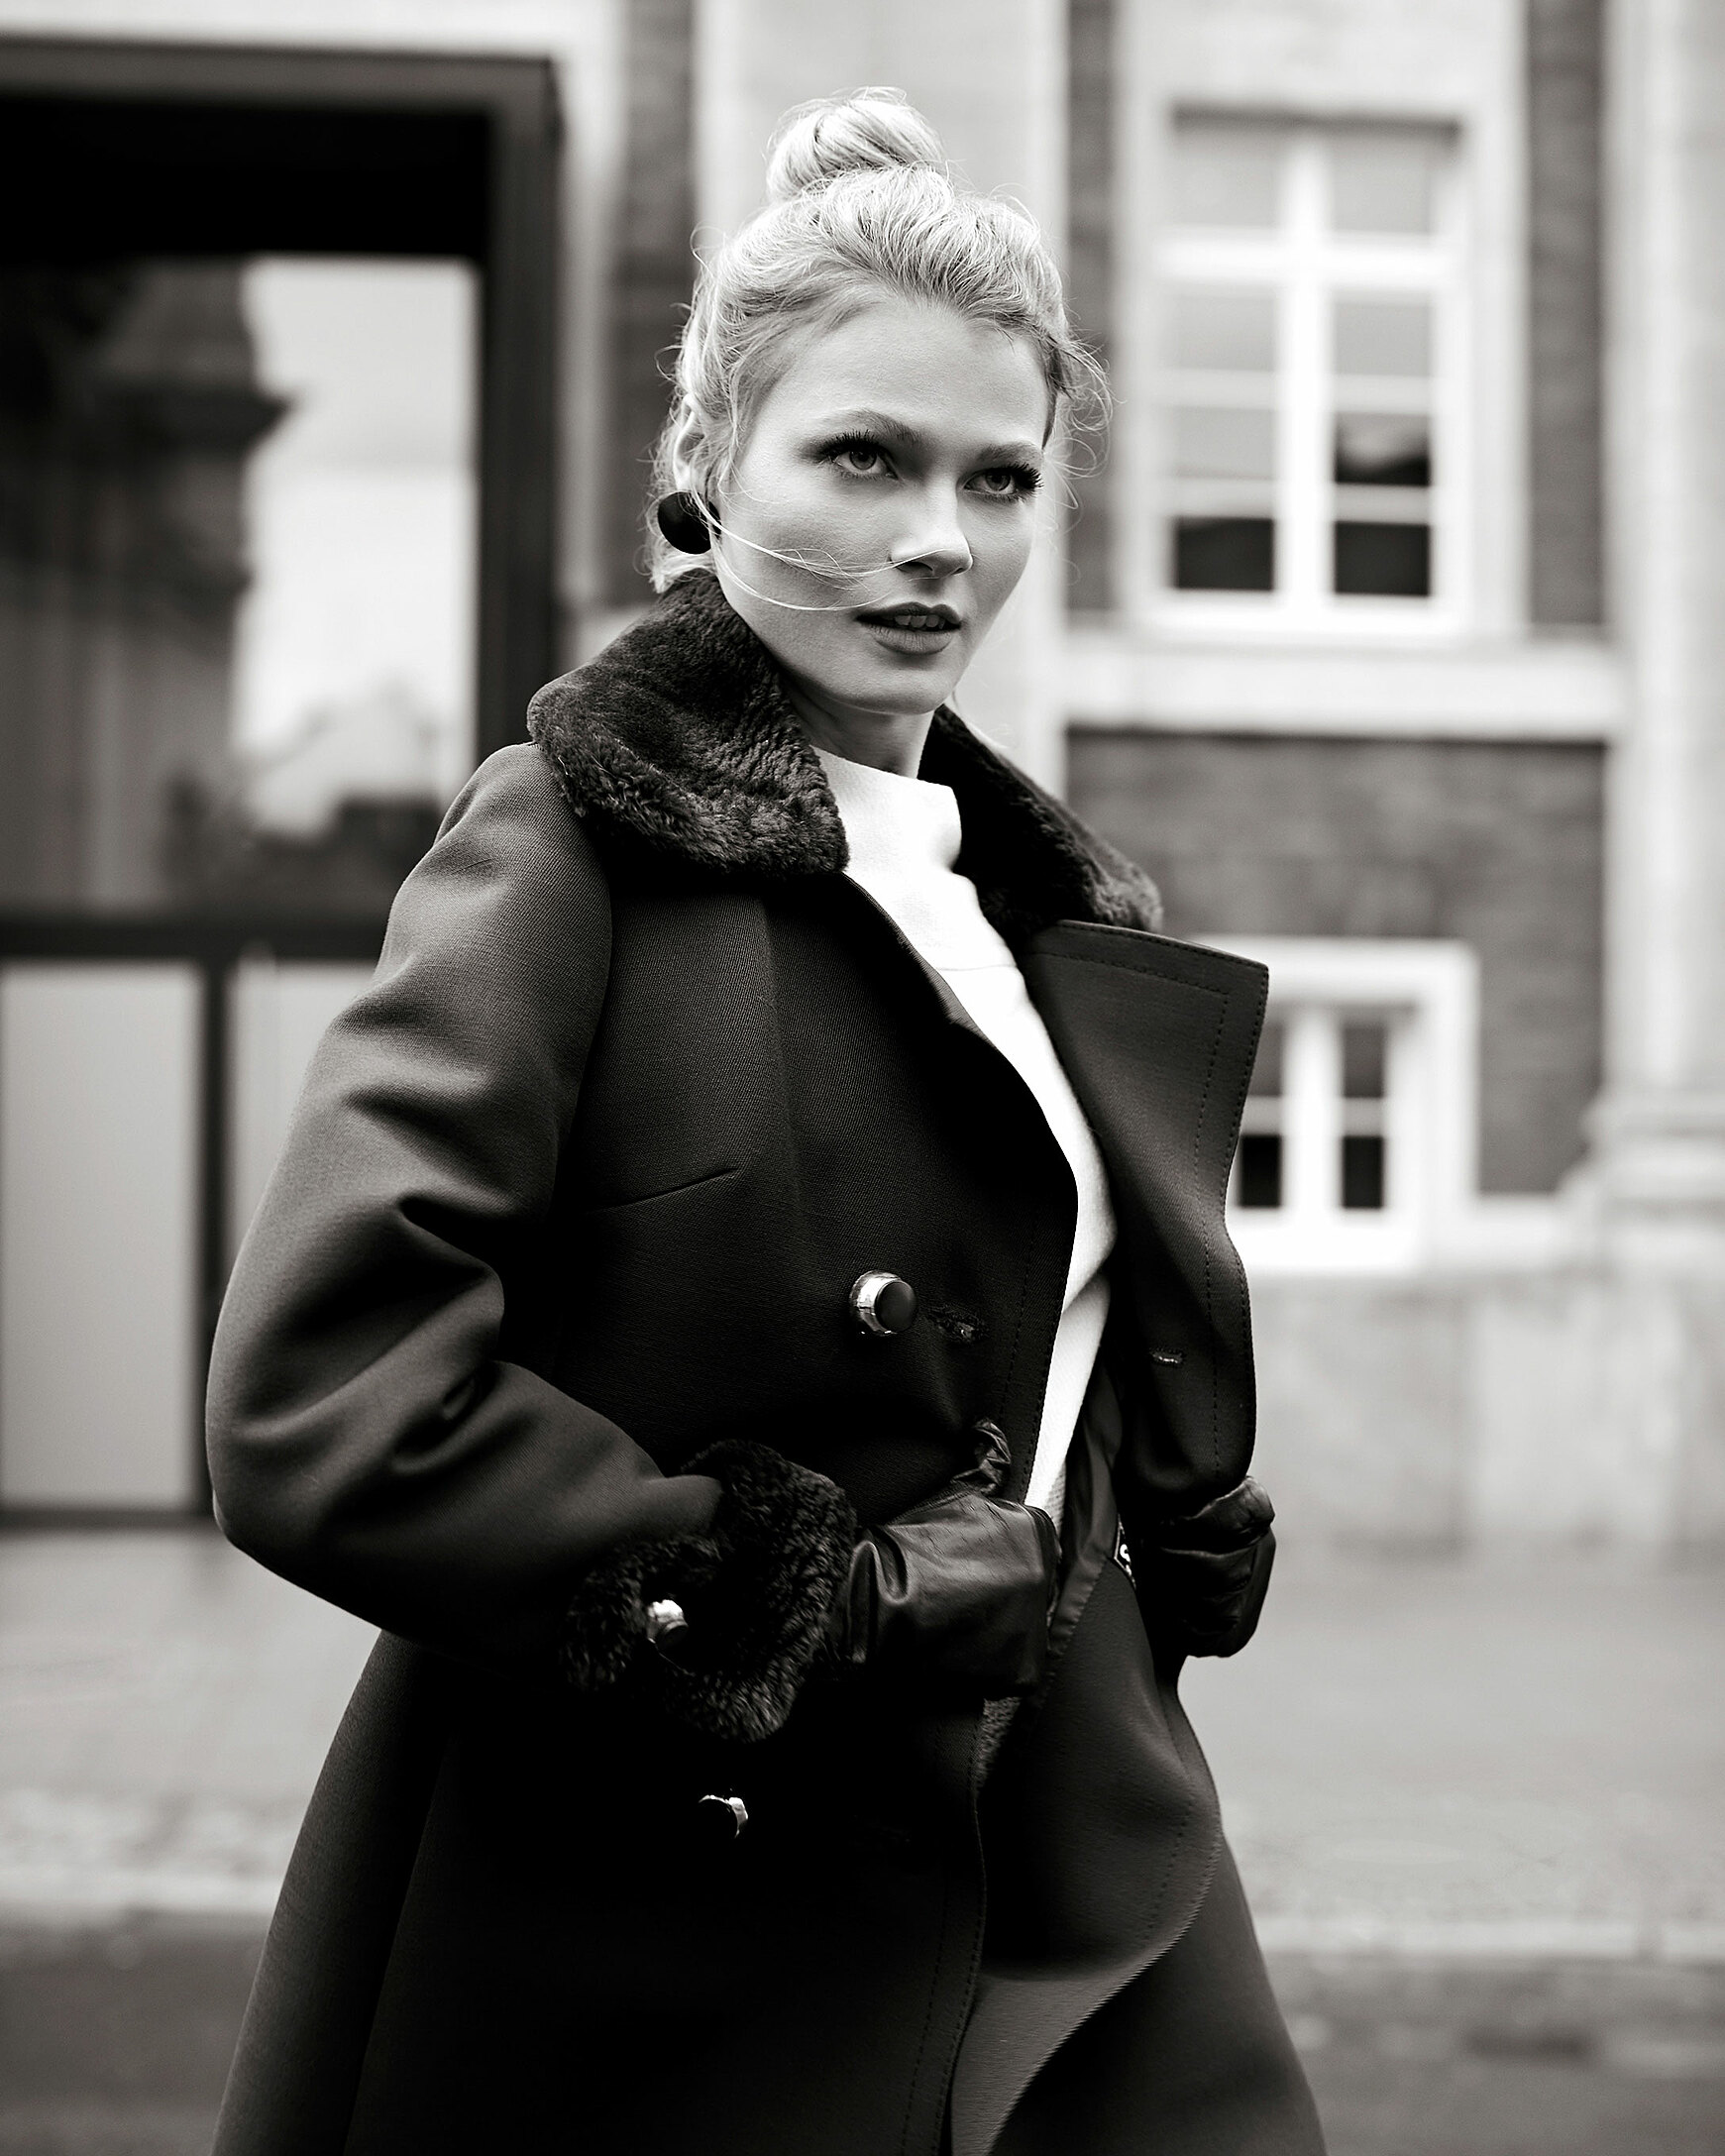 A black and white photo of a blonde model in a winter coat with fake fur applications and a pair of leather gloves in front of a building. She jumps next to the camera